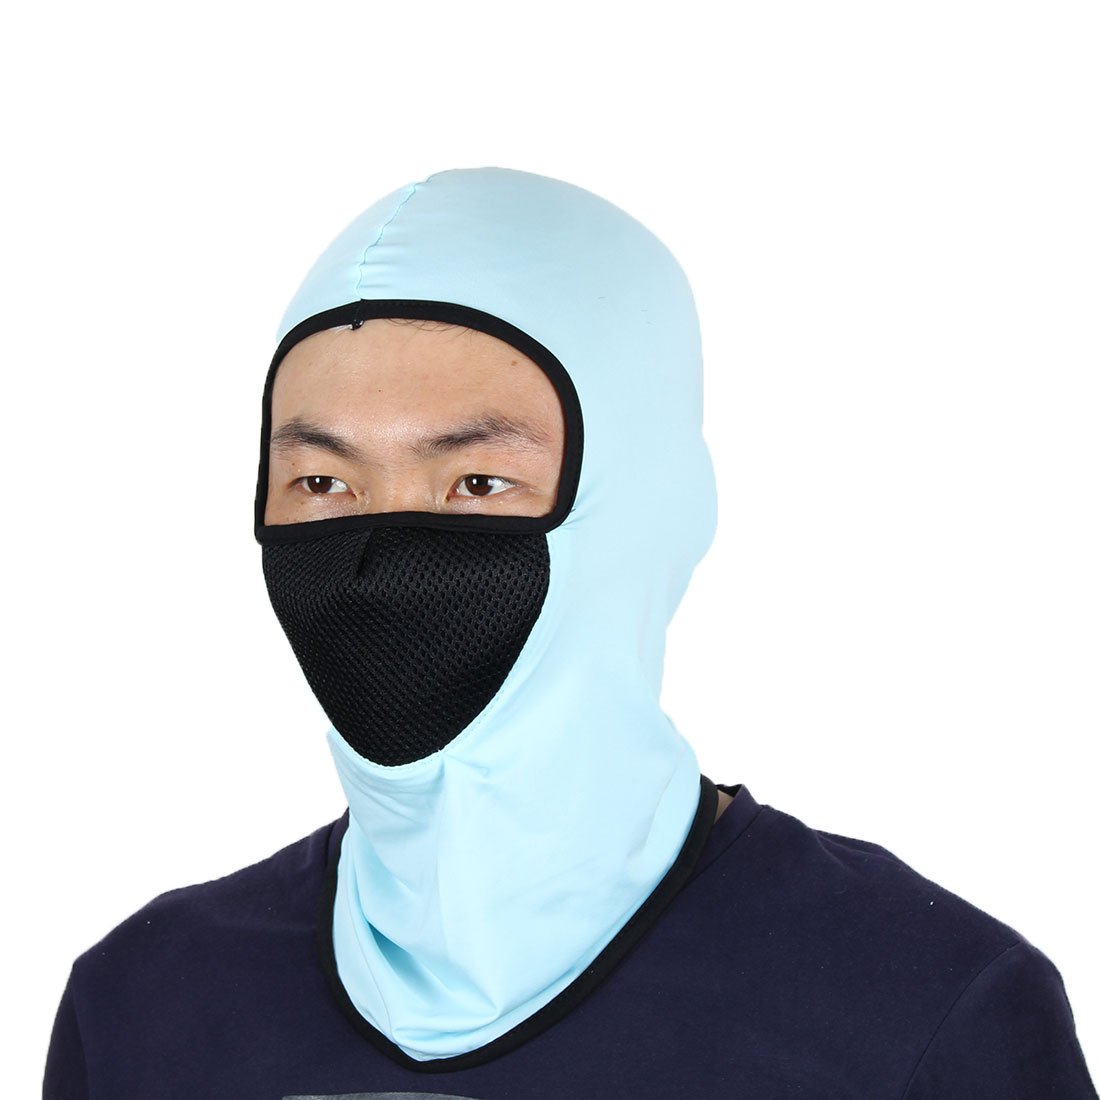 Full Face Mask Outdoor Sports Cycling Neck Protector Hat Helmet Balaclava Blue by Unique-Bargains